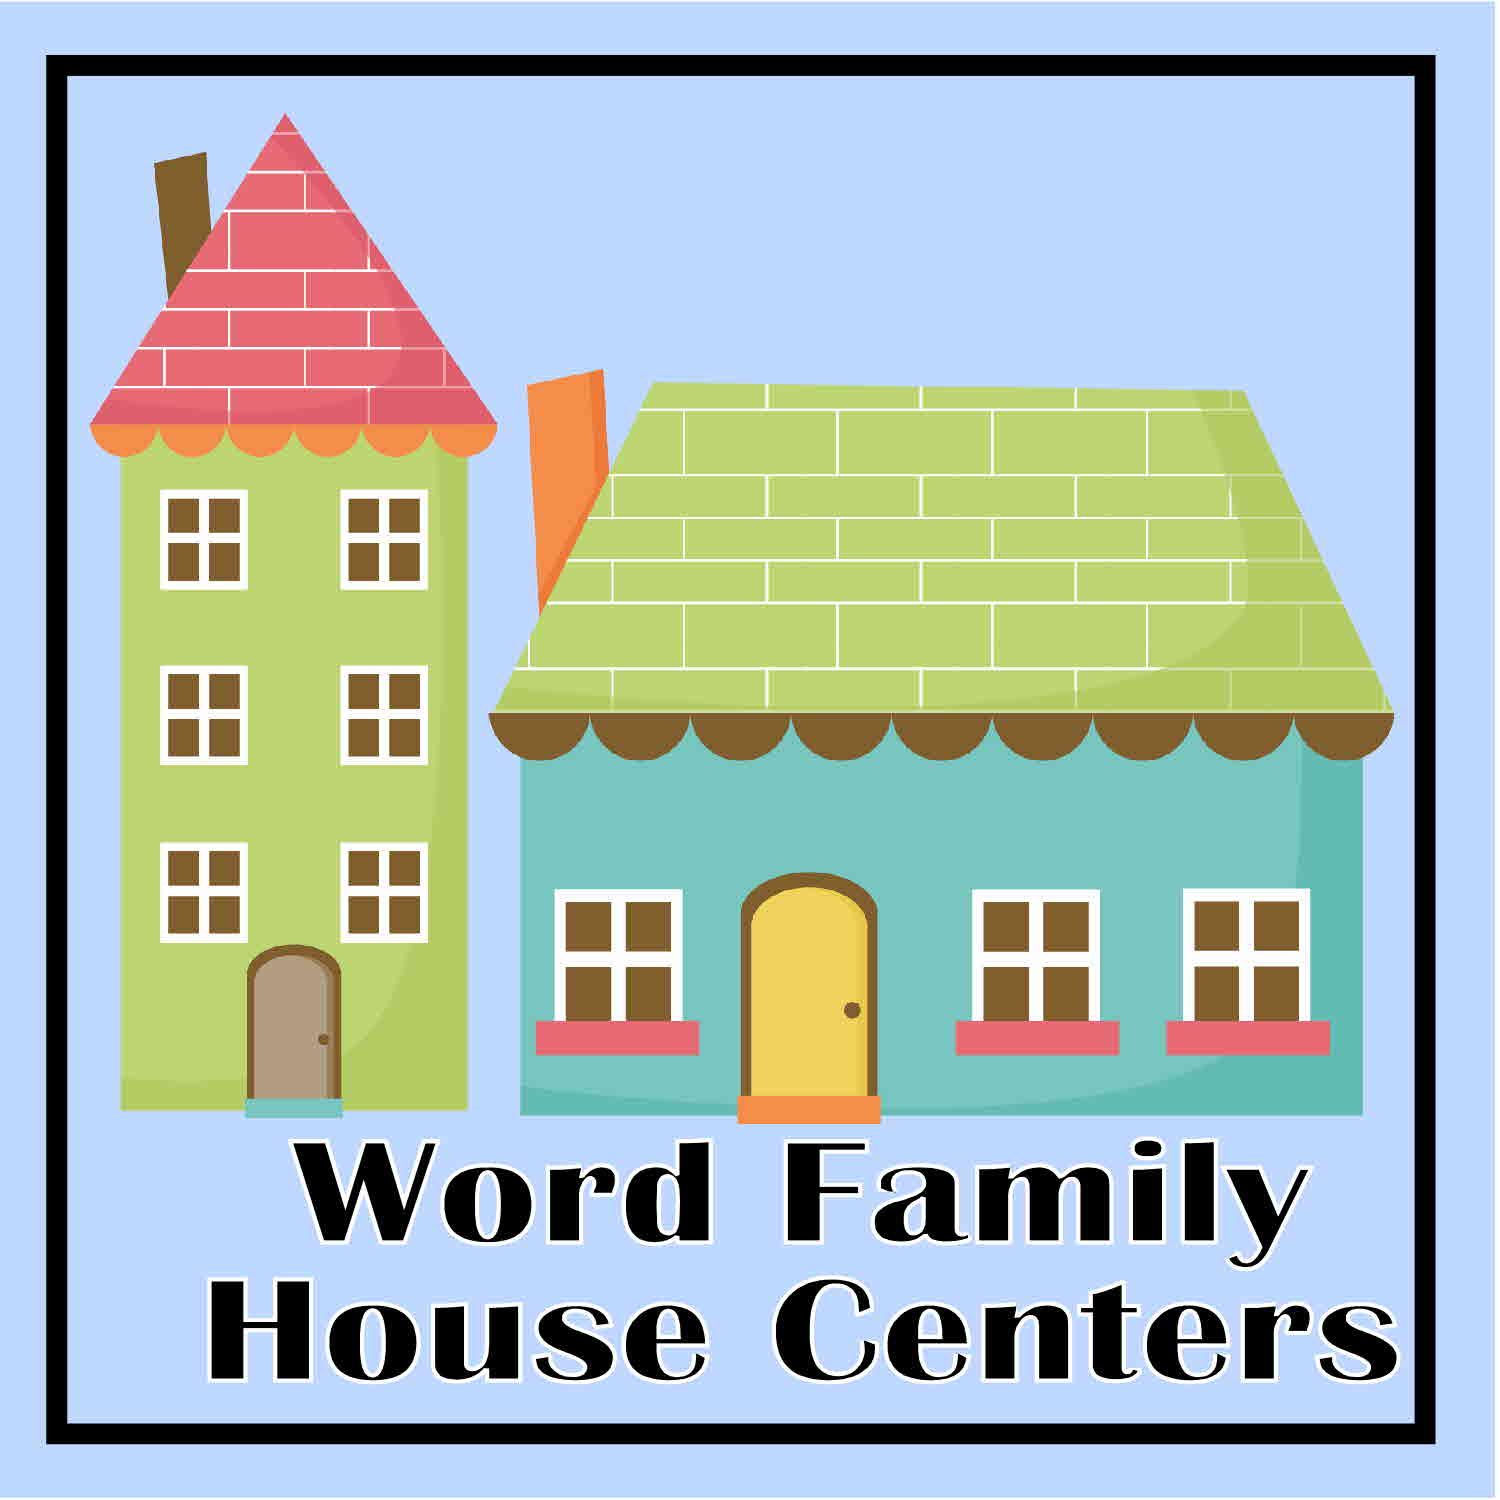 6 Images of Printable Word Family House